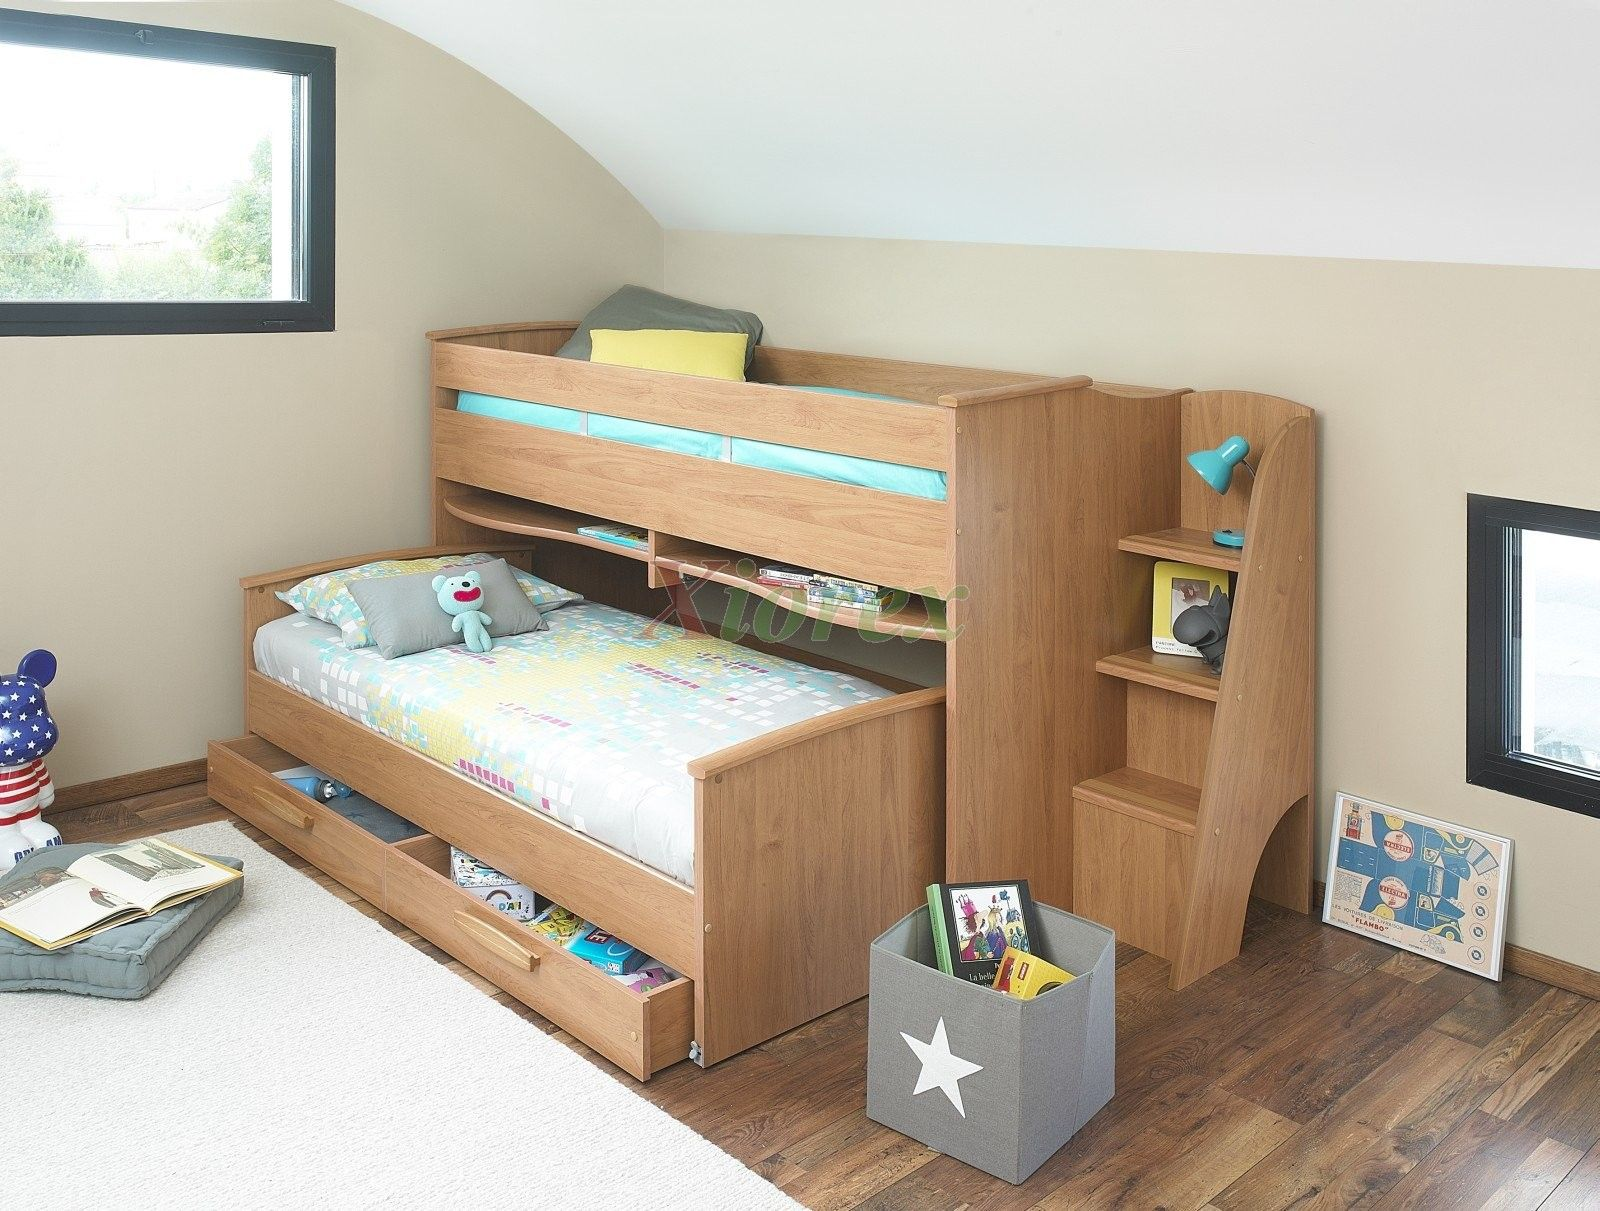 High sleeper loft style cabin bed with hideaway futon bed rutland - Cabin Bed With Additional Pull Out Bed